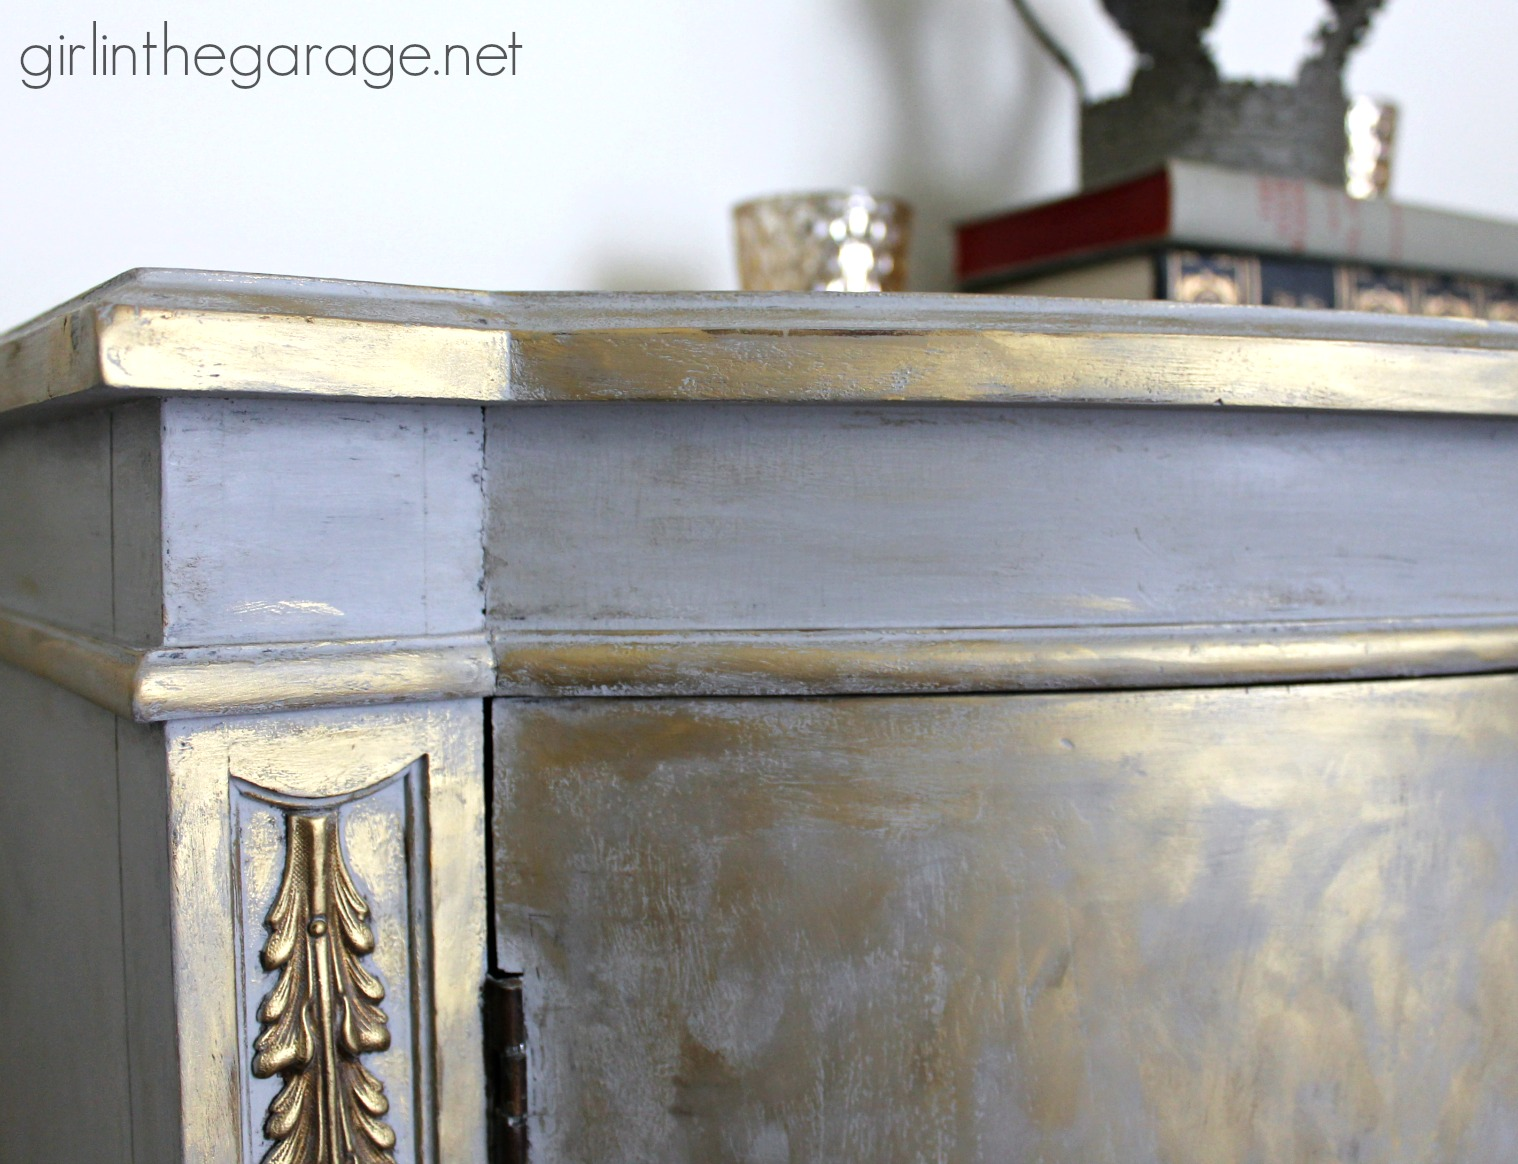 ... Gold And Gray Cabinet {Metallic Themed Furniture Makeover}    Girlinthegarage.net